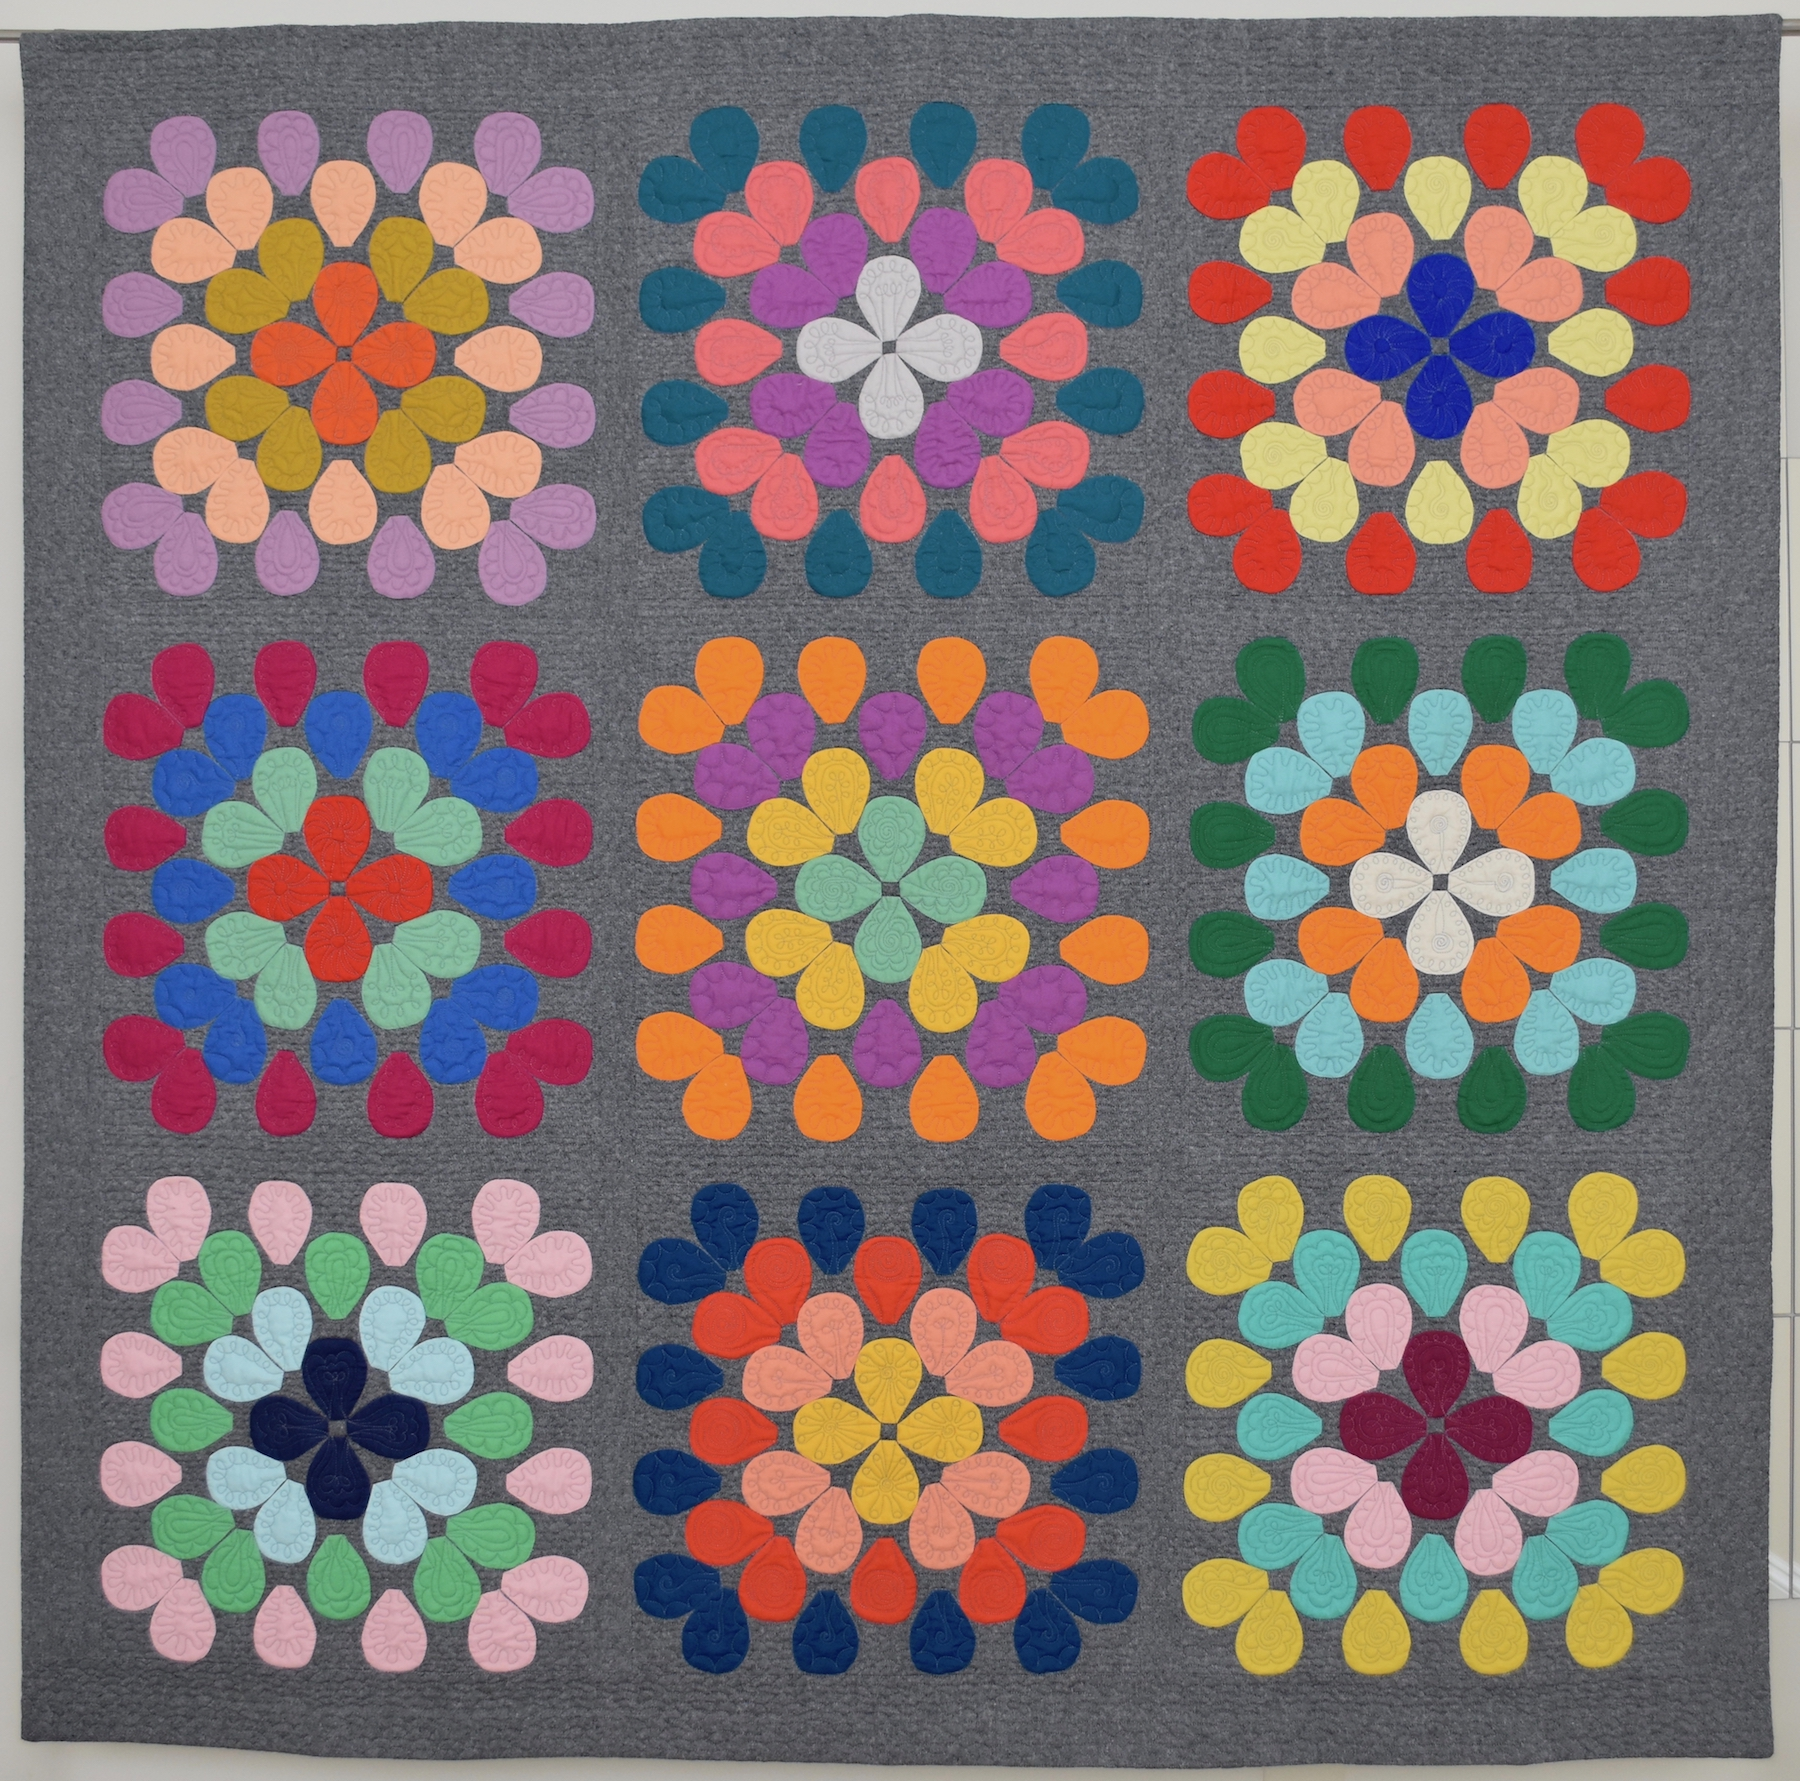 "3rd   Place: Fauchet  62"" x 61"" Pieced by Virginia Robinson Triangle MQG, Chapel Hill, NC Quilted by Suzan deSerres"